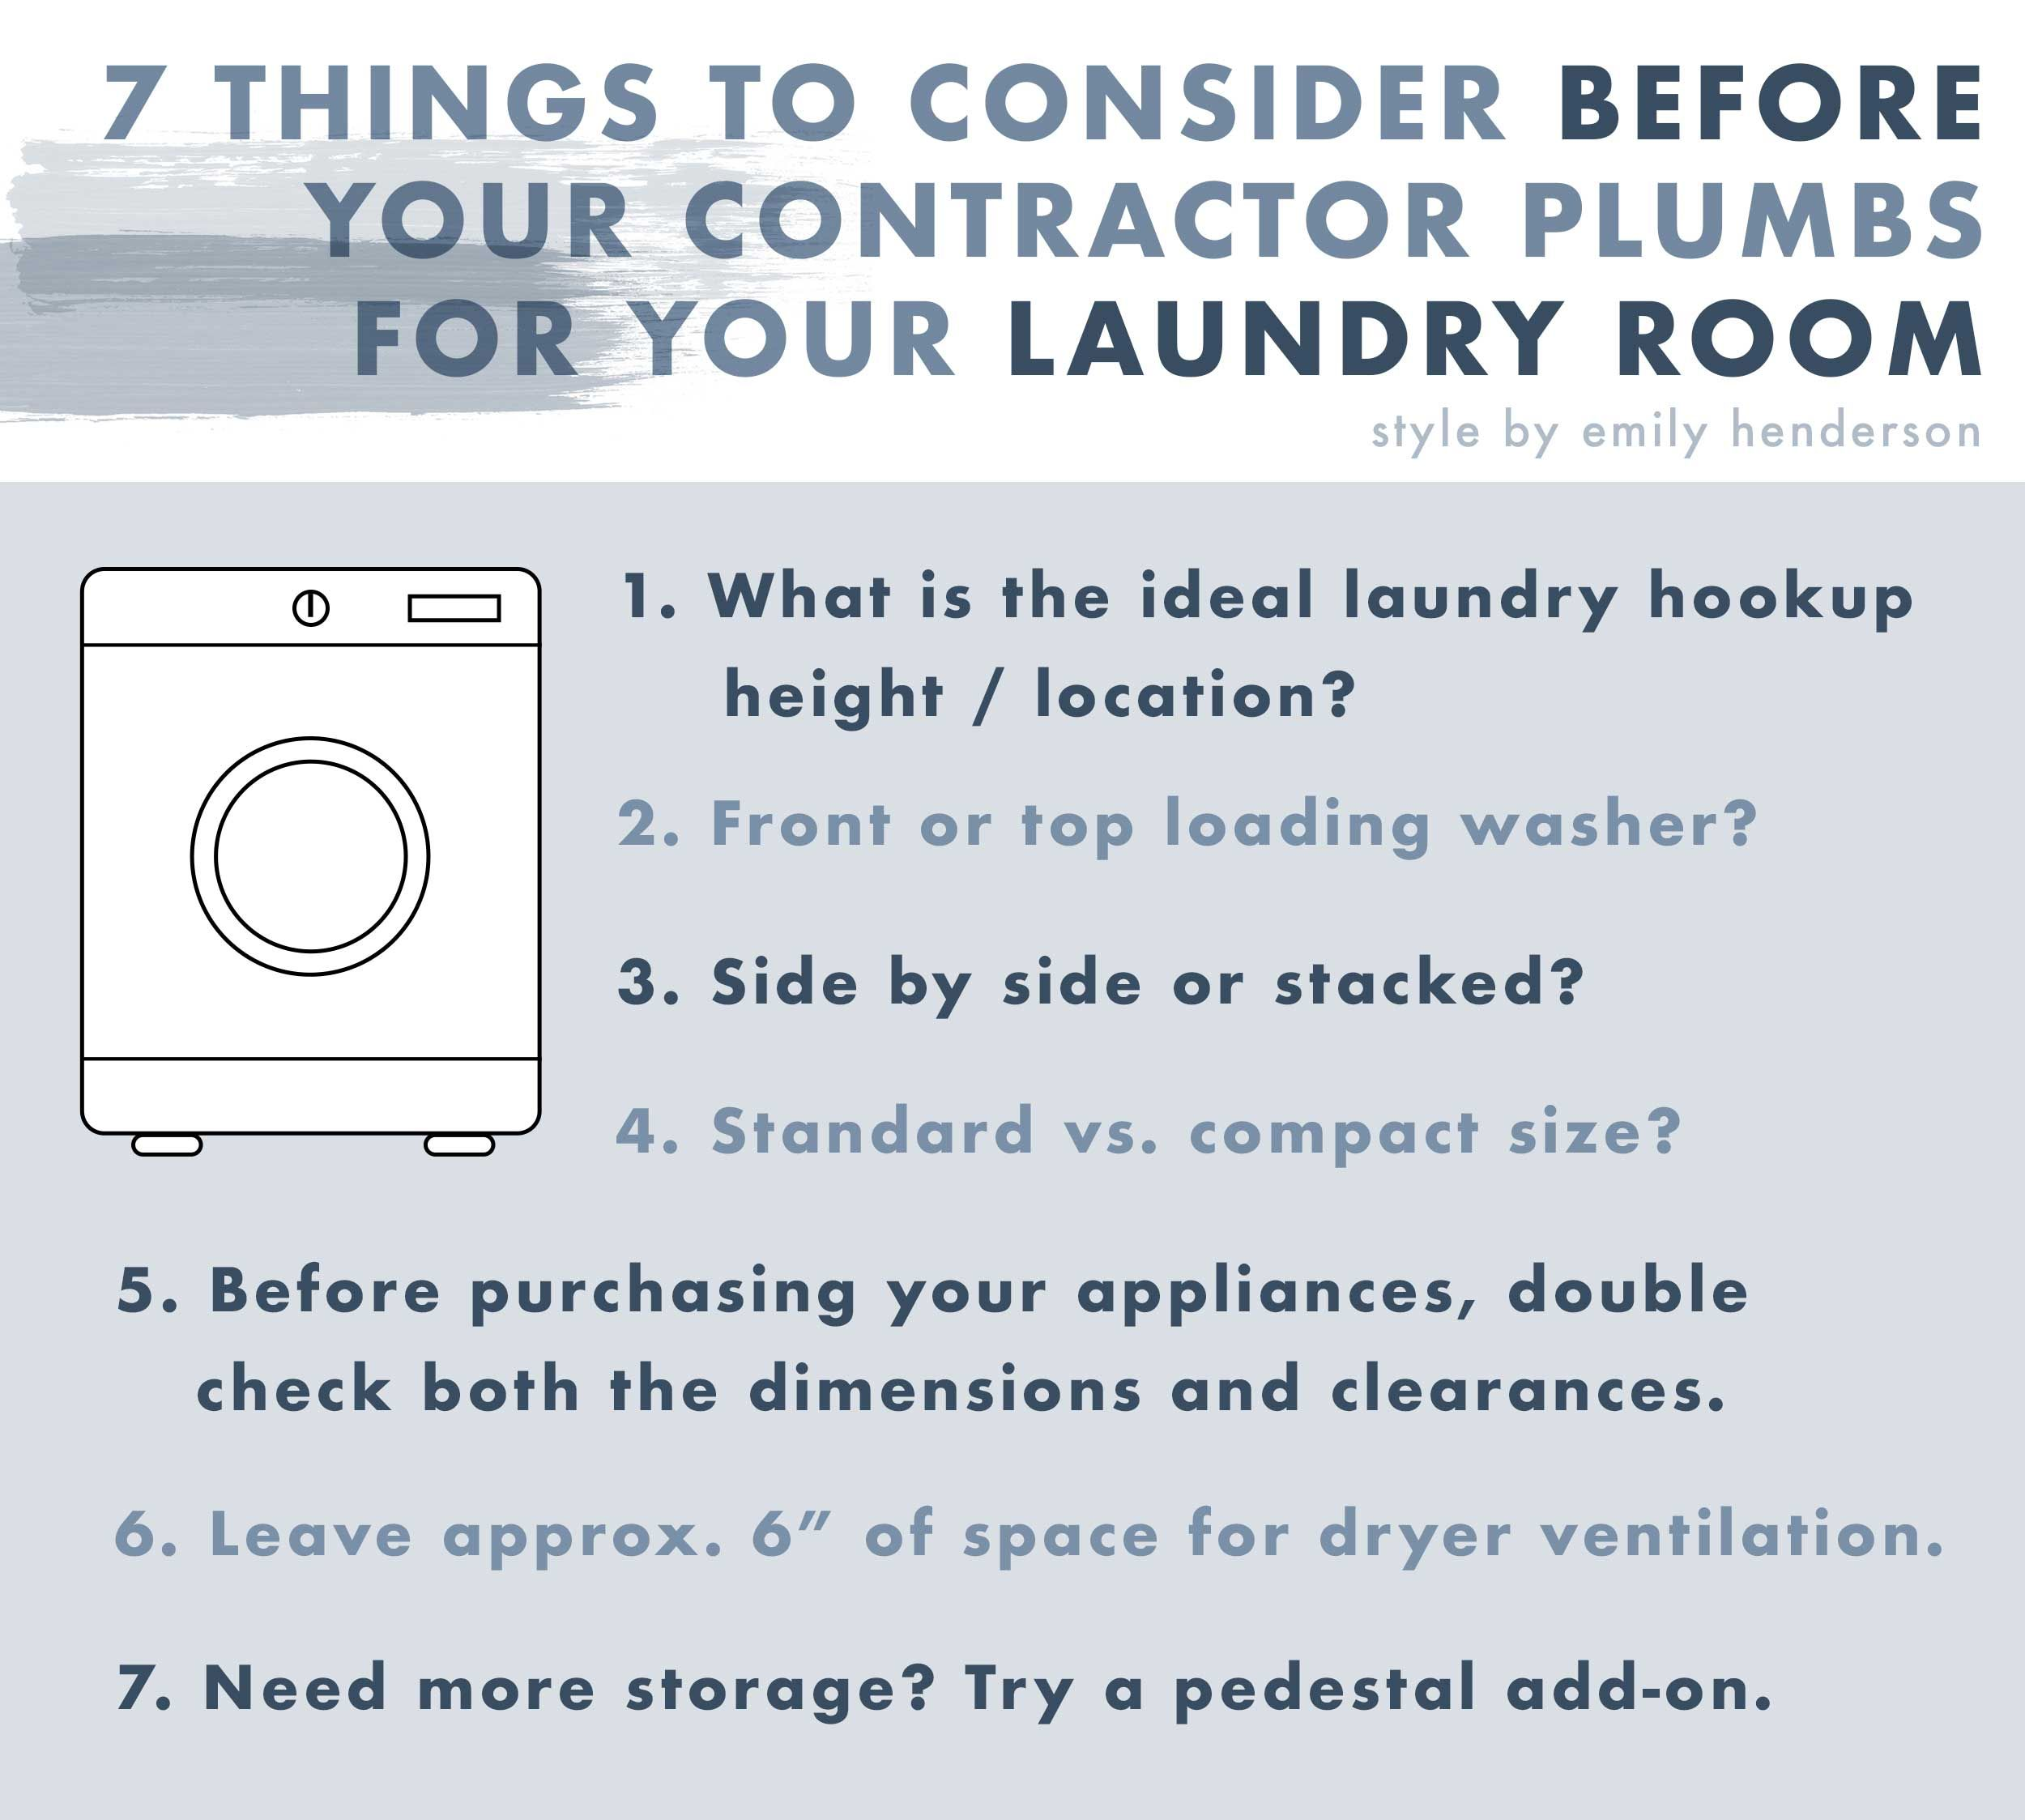 Designing Our Laundry Room The 7 Things Our Contractor And Plumber Told Us To Consider In 2020 Laundry Room Plumber Emily Henderson